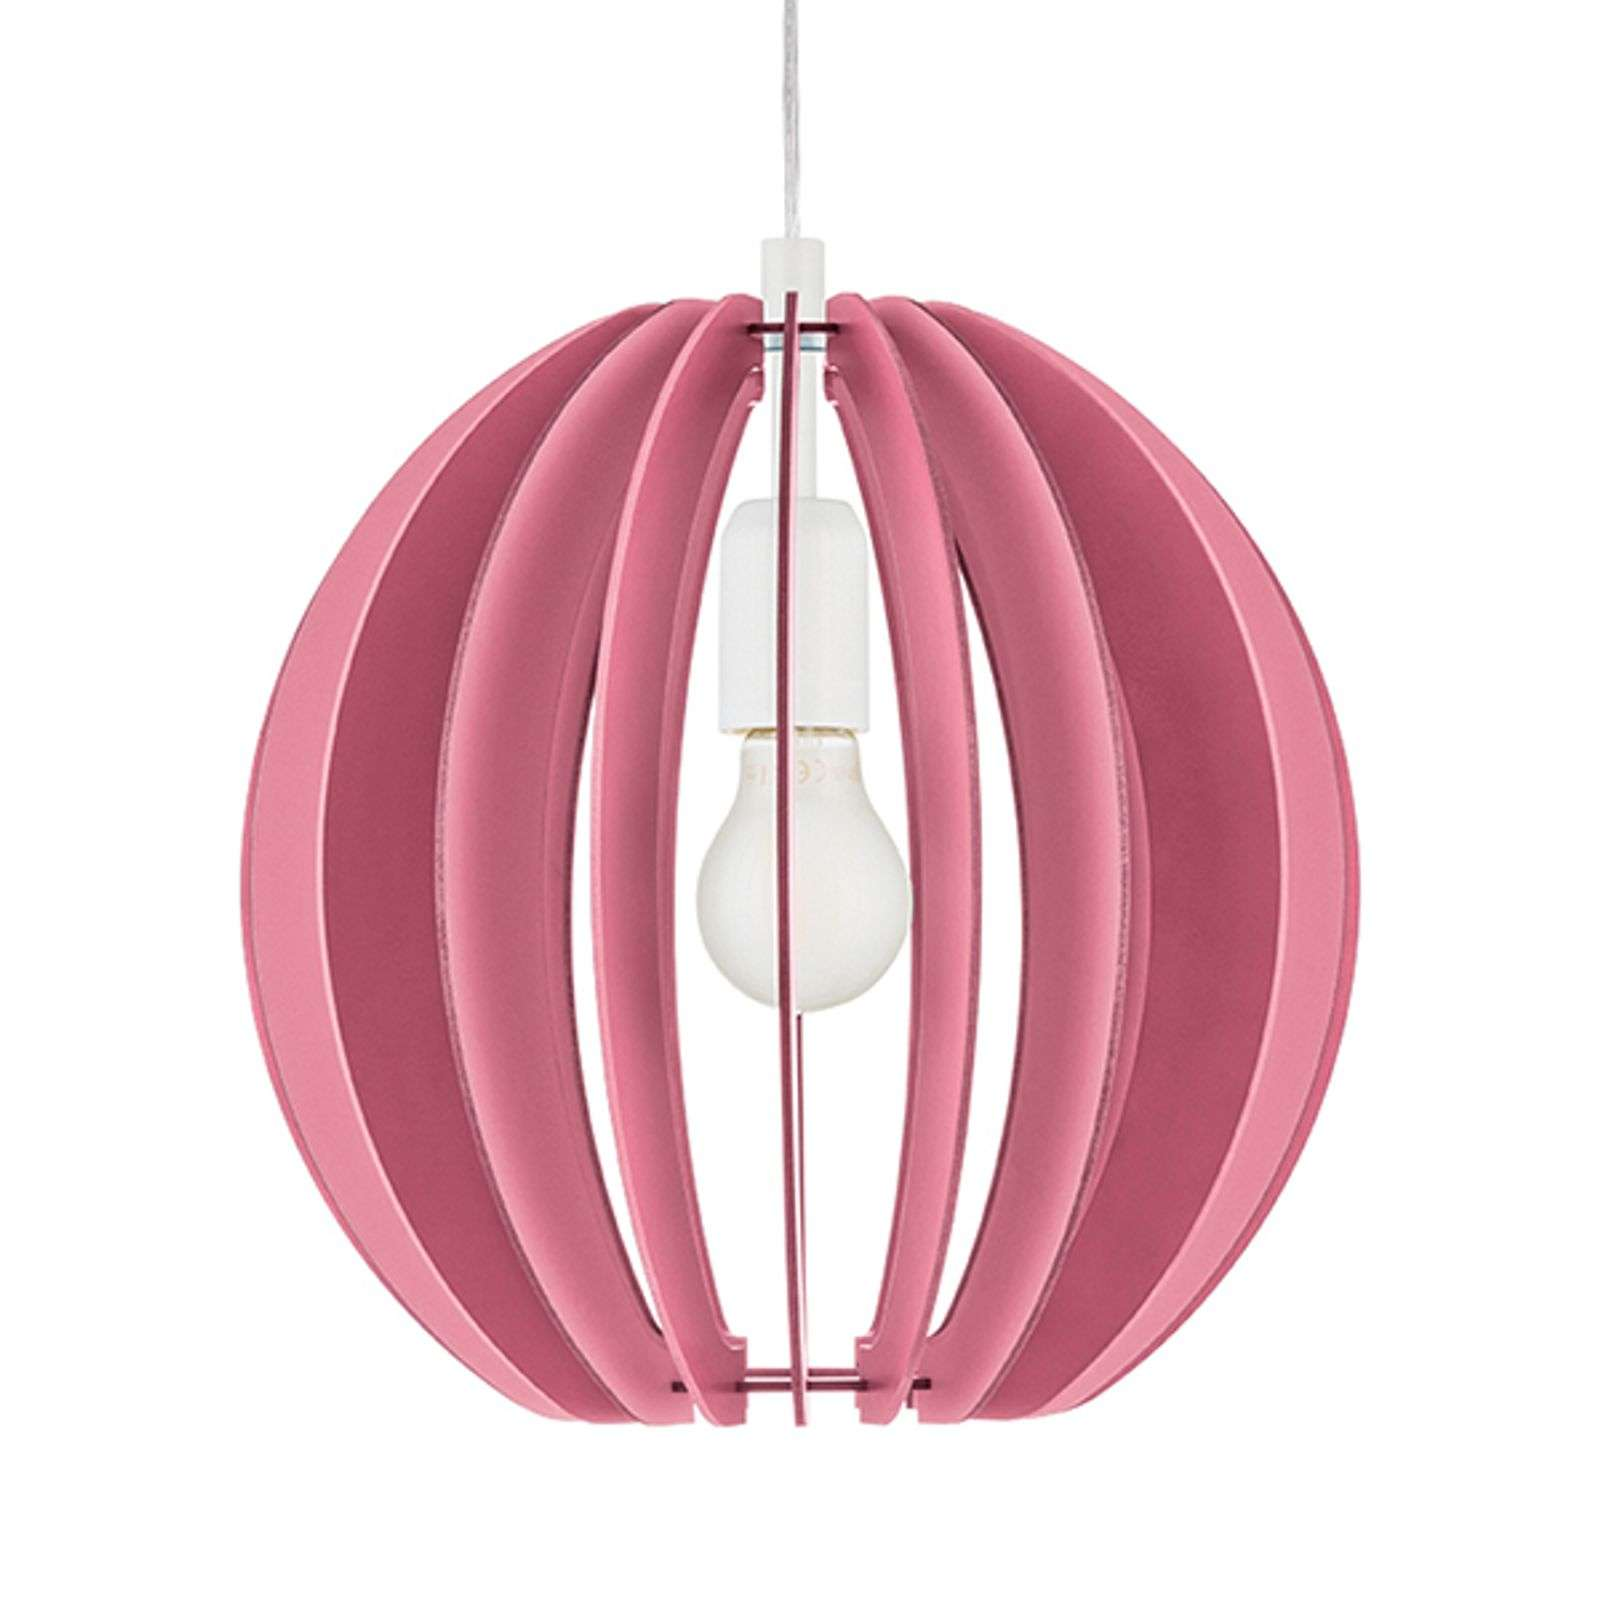 Suspension Fabella rose, lamelles de bois